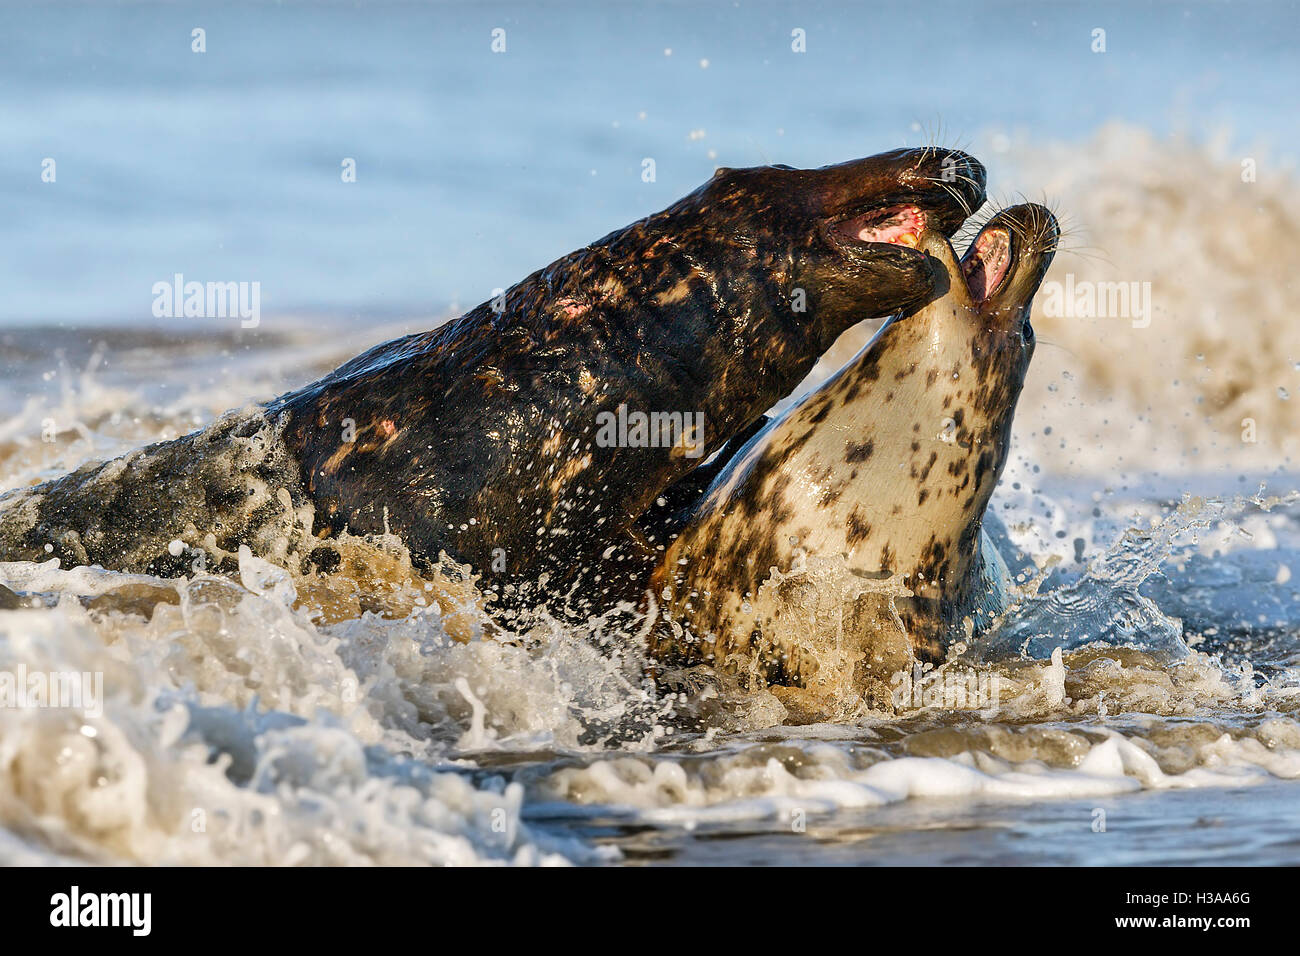 Grey seal courtship behaviour, North Sea coast, Norfolk, England - Stock Image